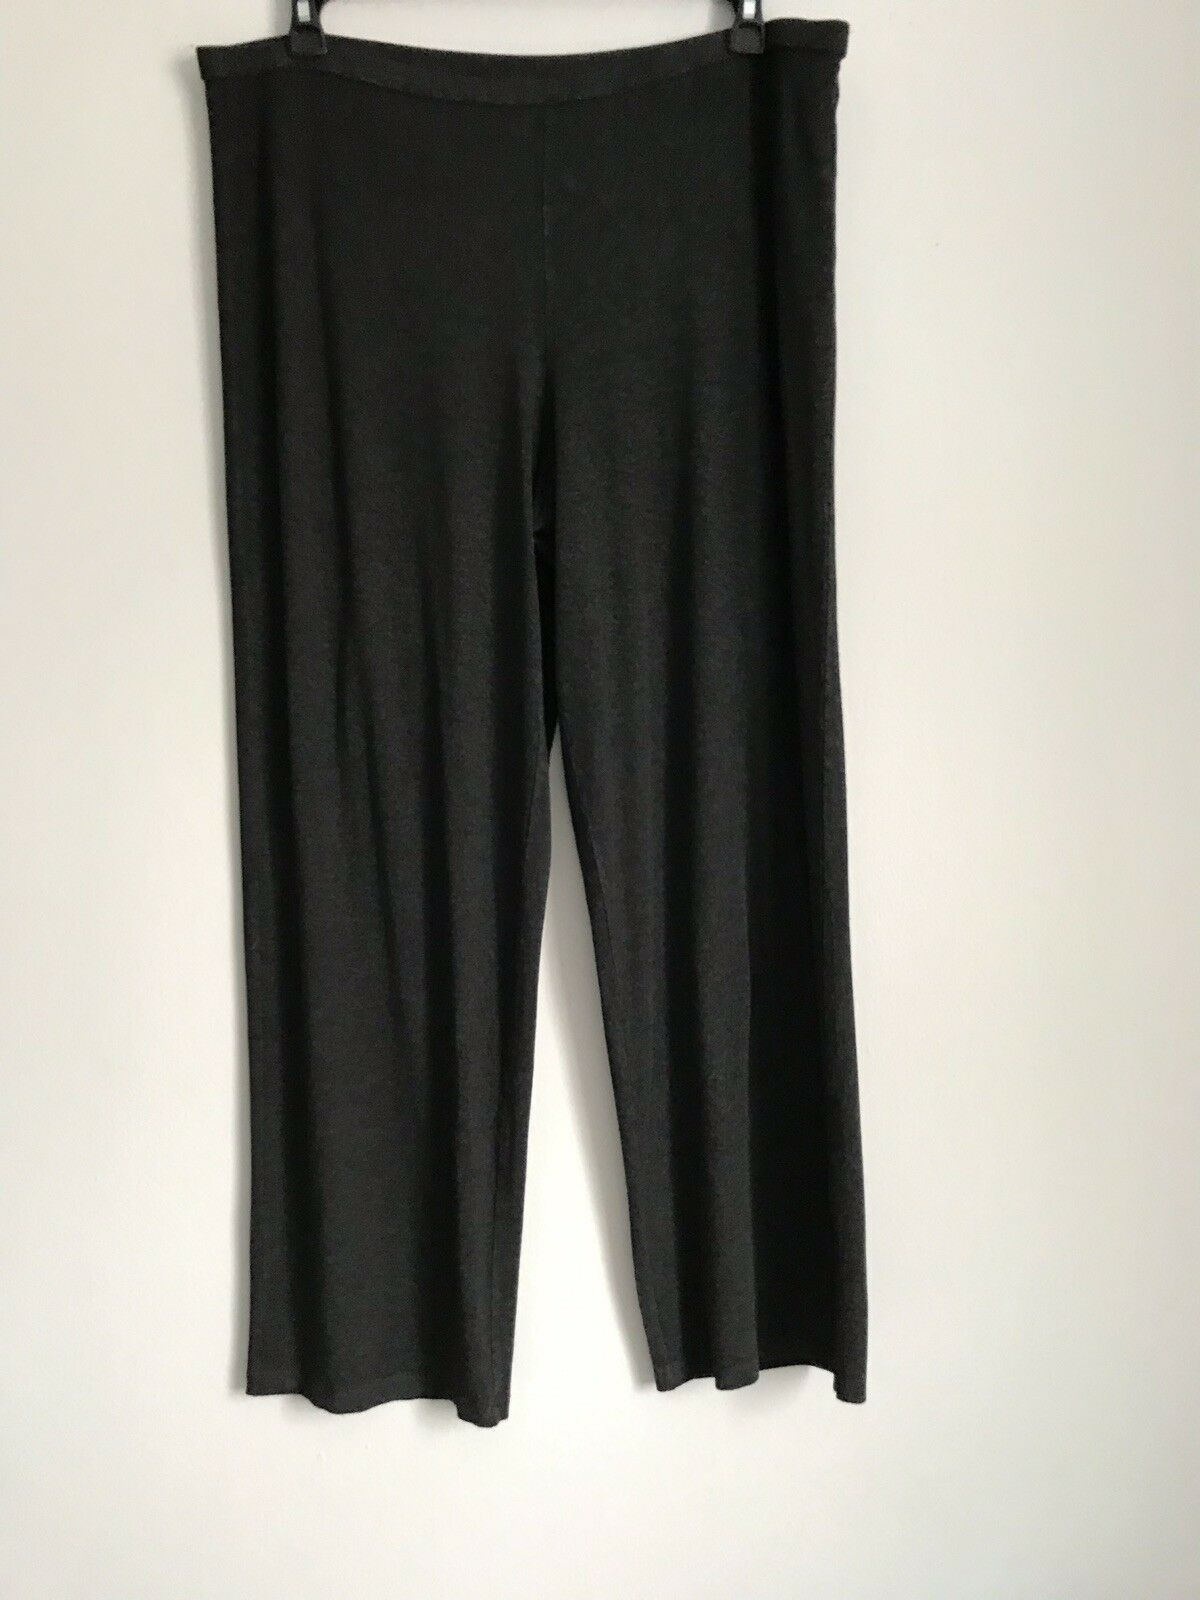 EILEEN FISHER ELASTIC WAIST STRETCHY JERSEY PULL-ON SOFT PANTS SZ XL TG